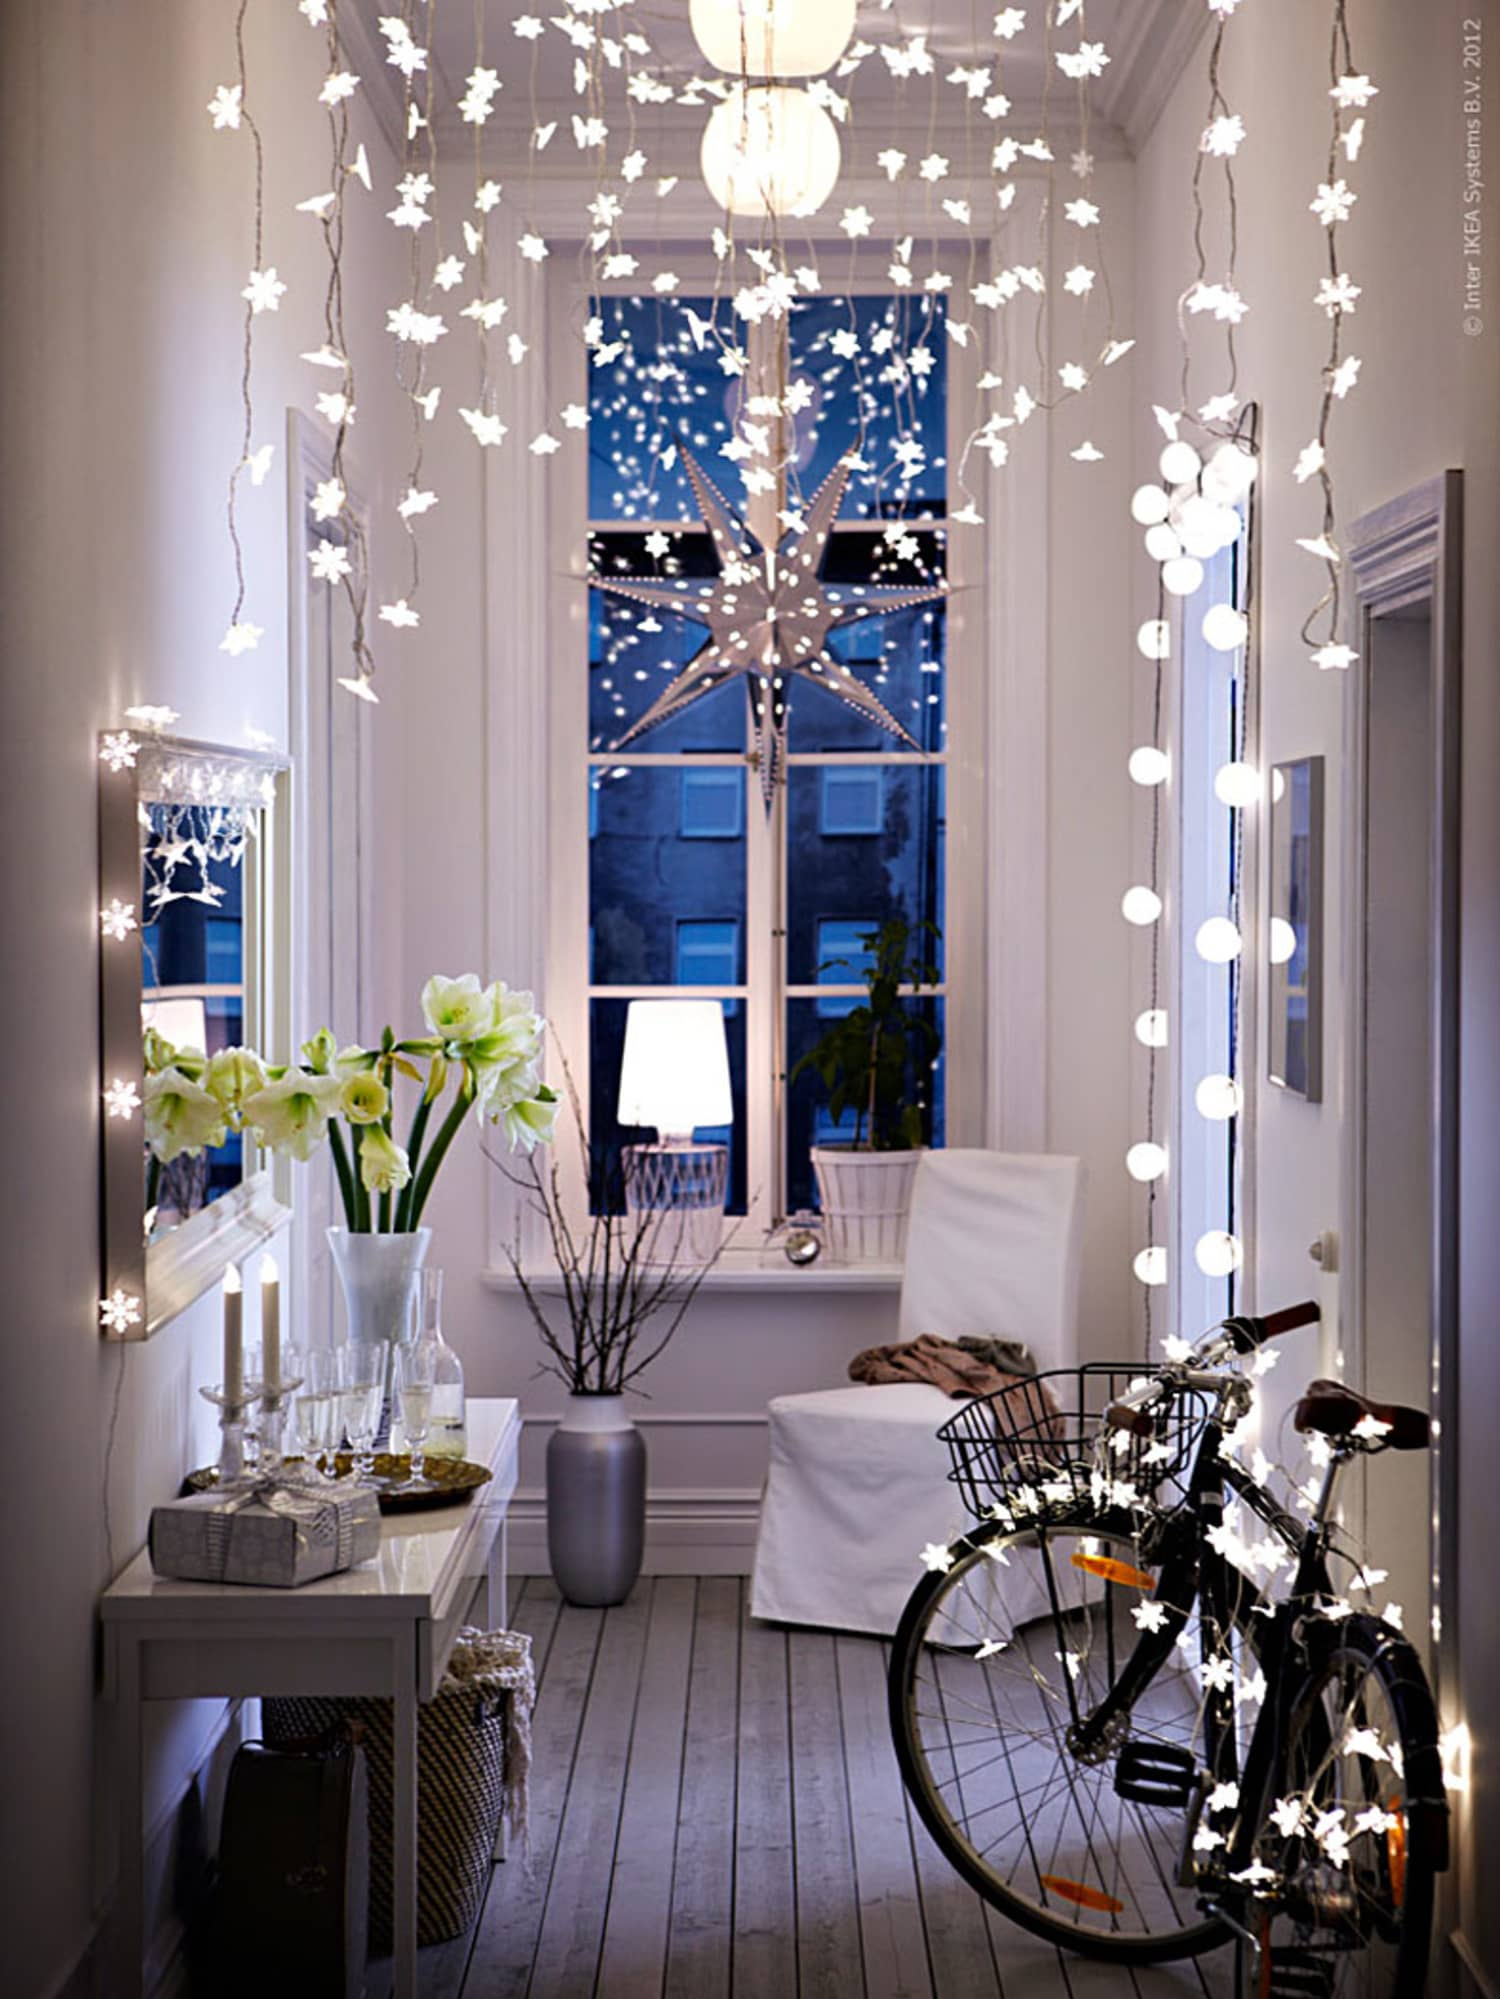 13 Ways to Use String Lights You (Maybe) Haven't Thought of Before